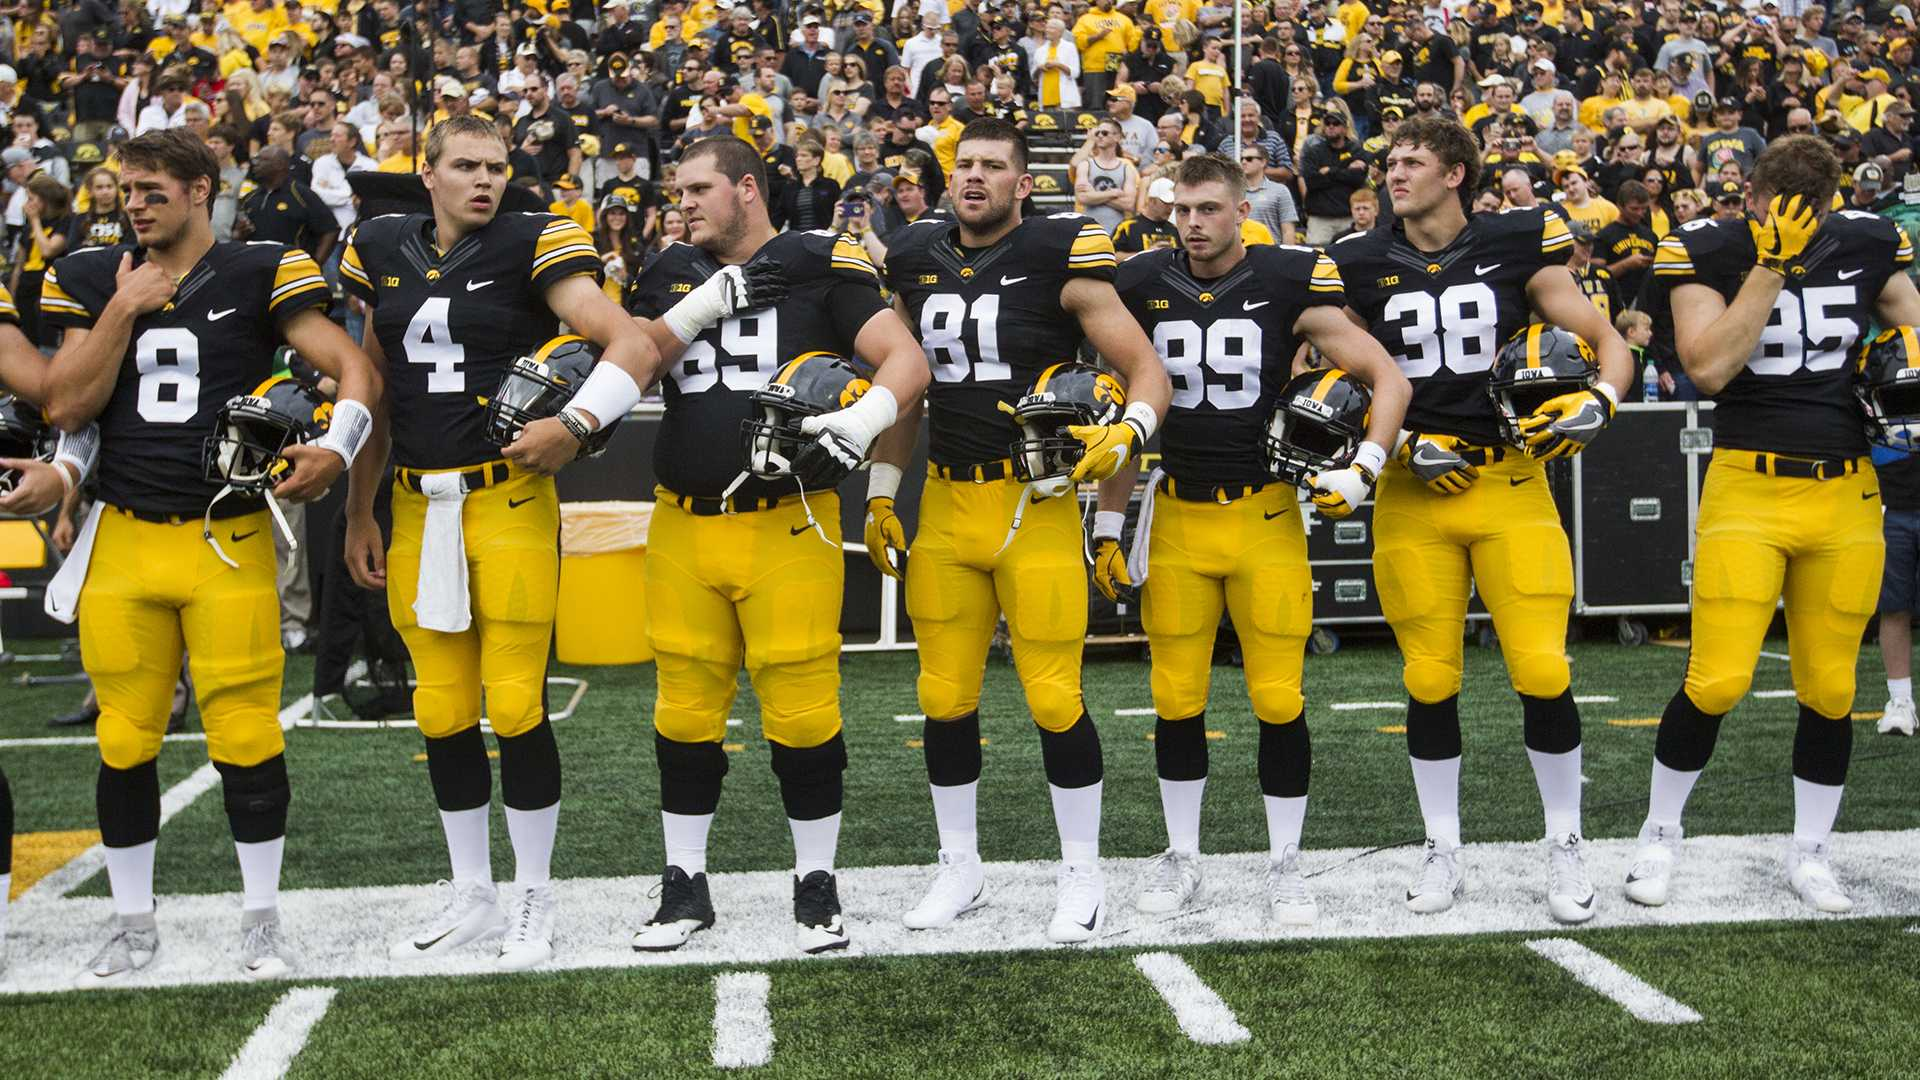 Iowa players stand on the sideline before the season opener against Wyoming on Saturday, Sep. 2, 2017. The Hawkeyes went on to defeat the Cowboys, 24-3. (Ben Smith/The Daily Iowan)